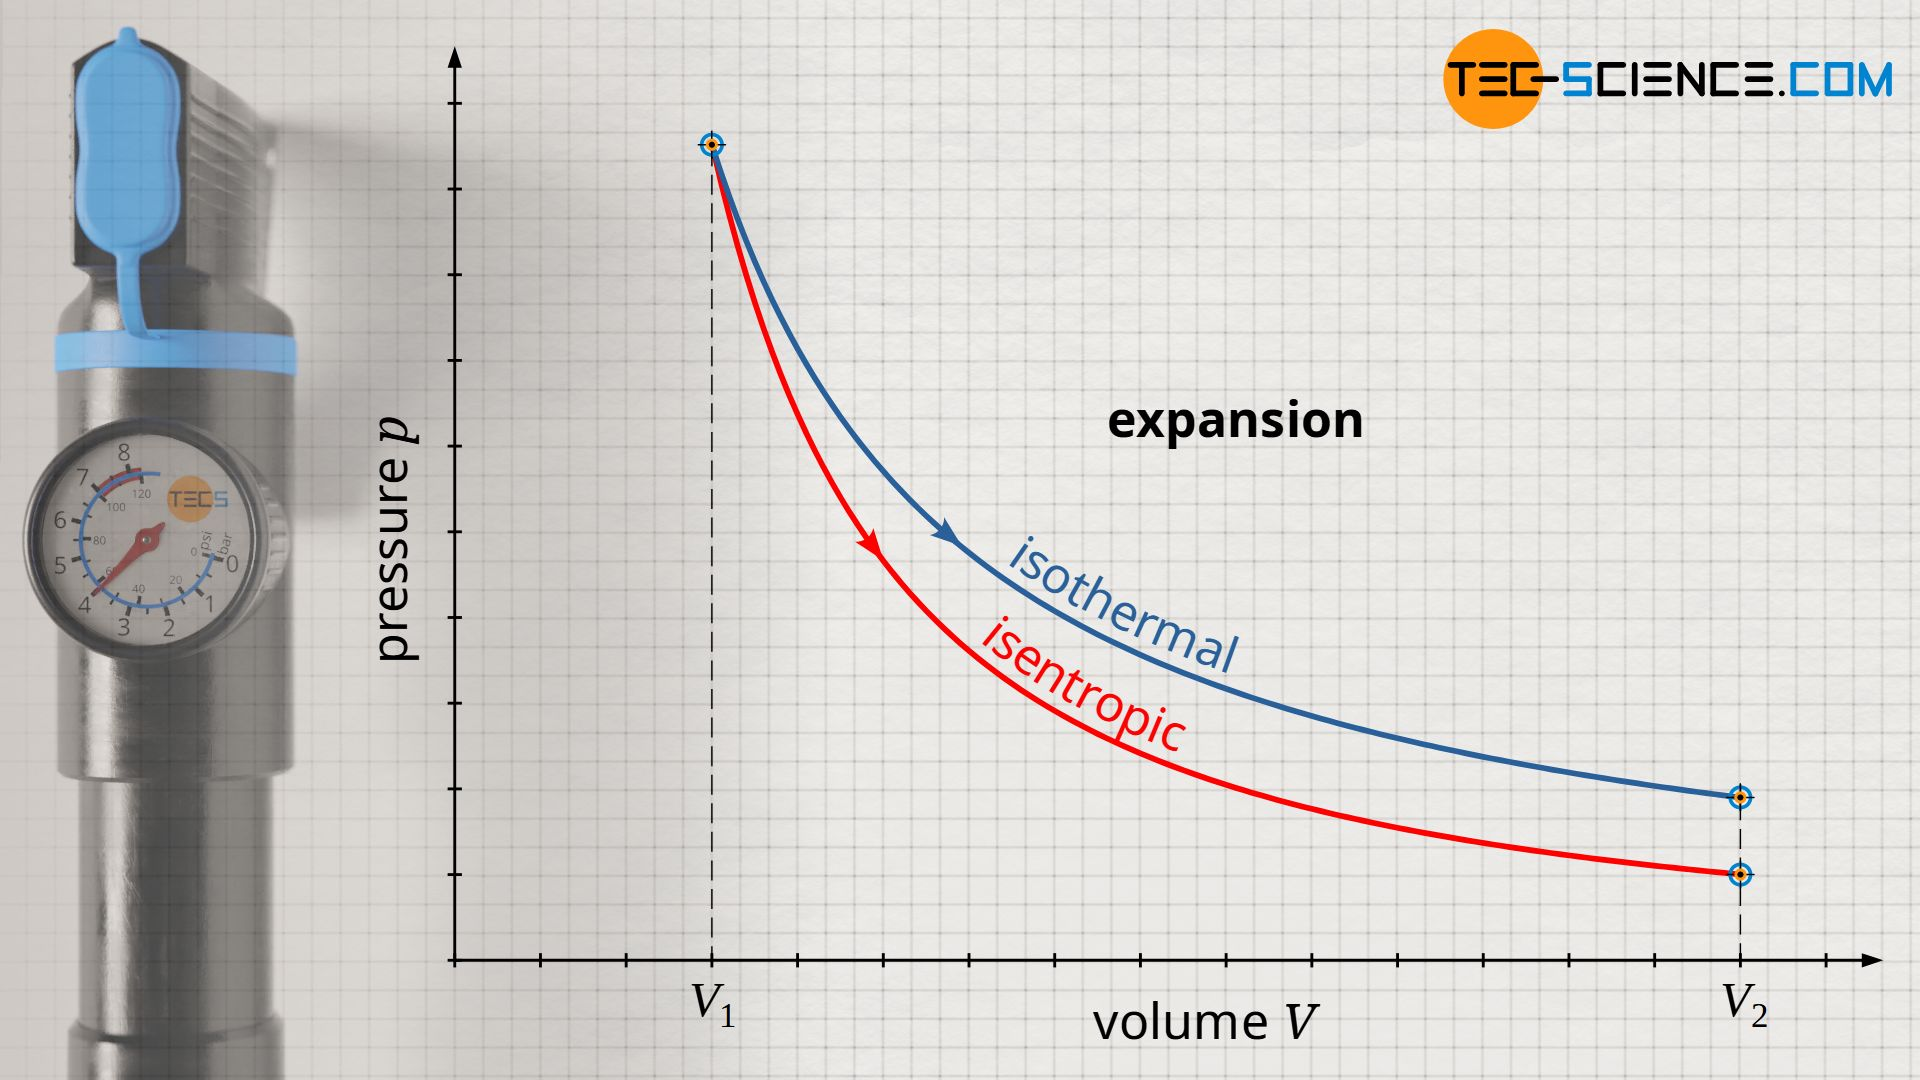 Comparison of an isothermal and an isentropic expansion in the volume-pressure diagram